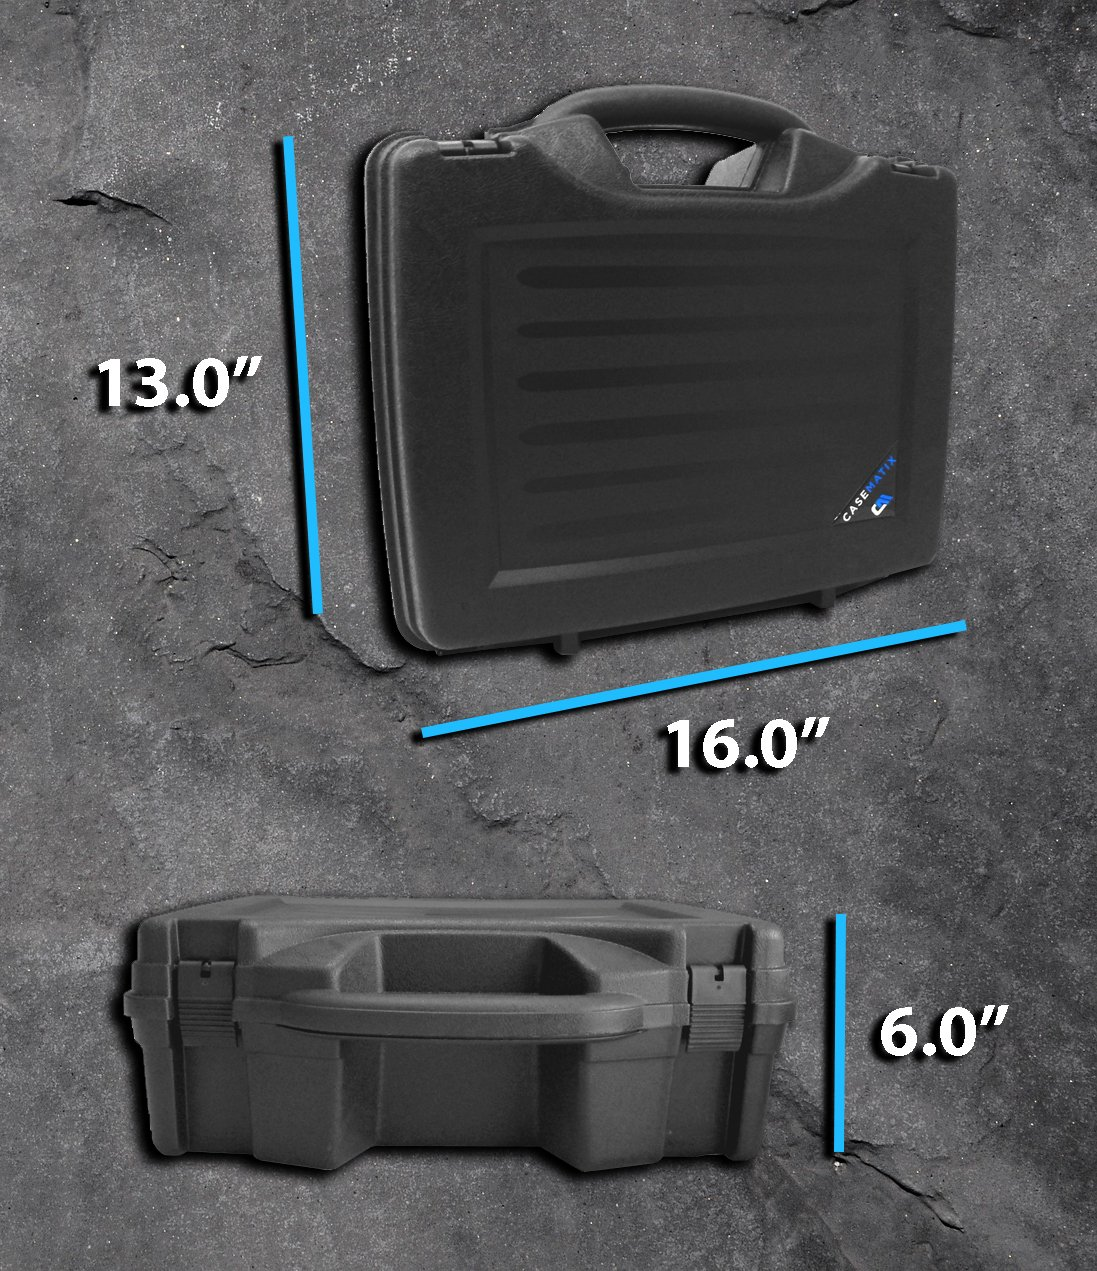 STUDIOCASE Wireless Microphone System Hard Case w/ Foam - Fits Sennheiser , Shure , Audio-Technica , Nady , VocoPro , AKG With Receiver , Body Transmitter , UHF Headset , Lavalier and Handheld Mics by CASEMATIX (Image #7)